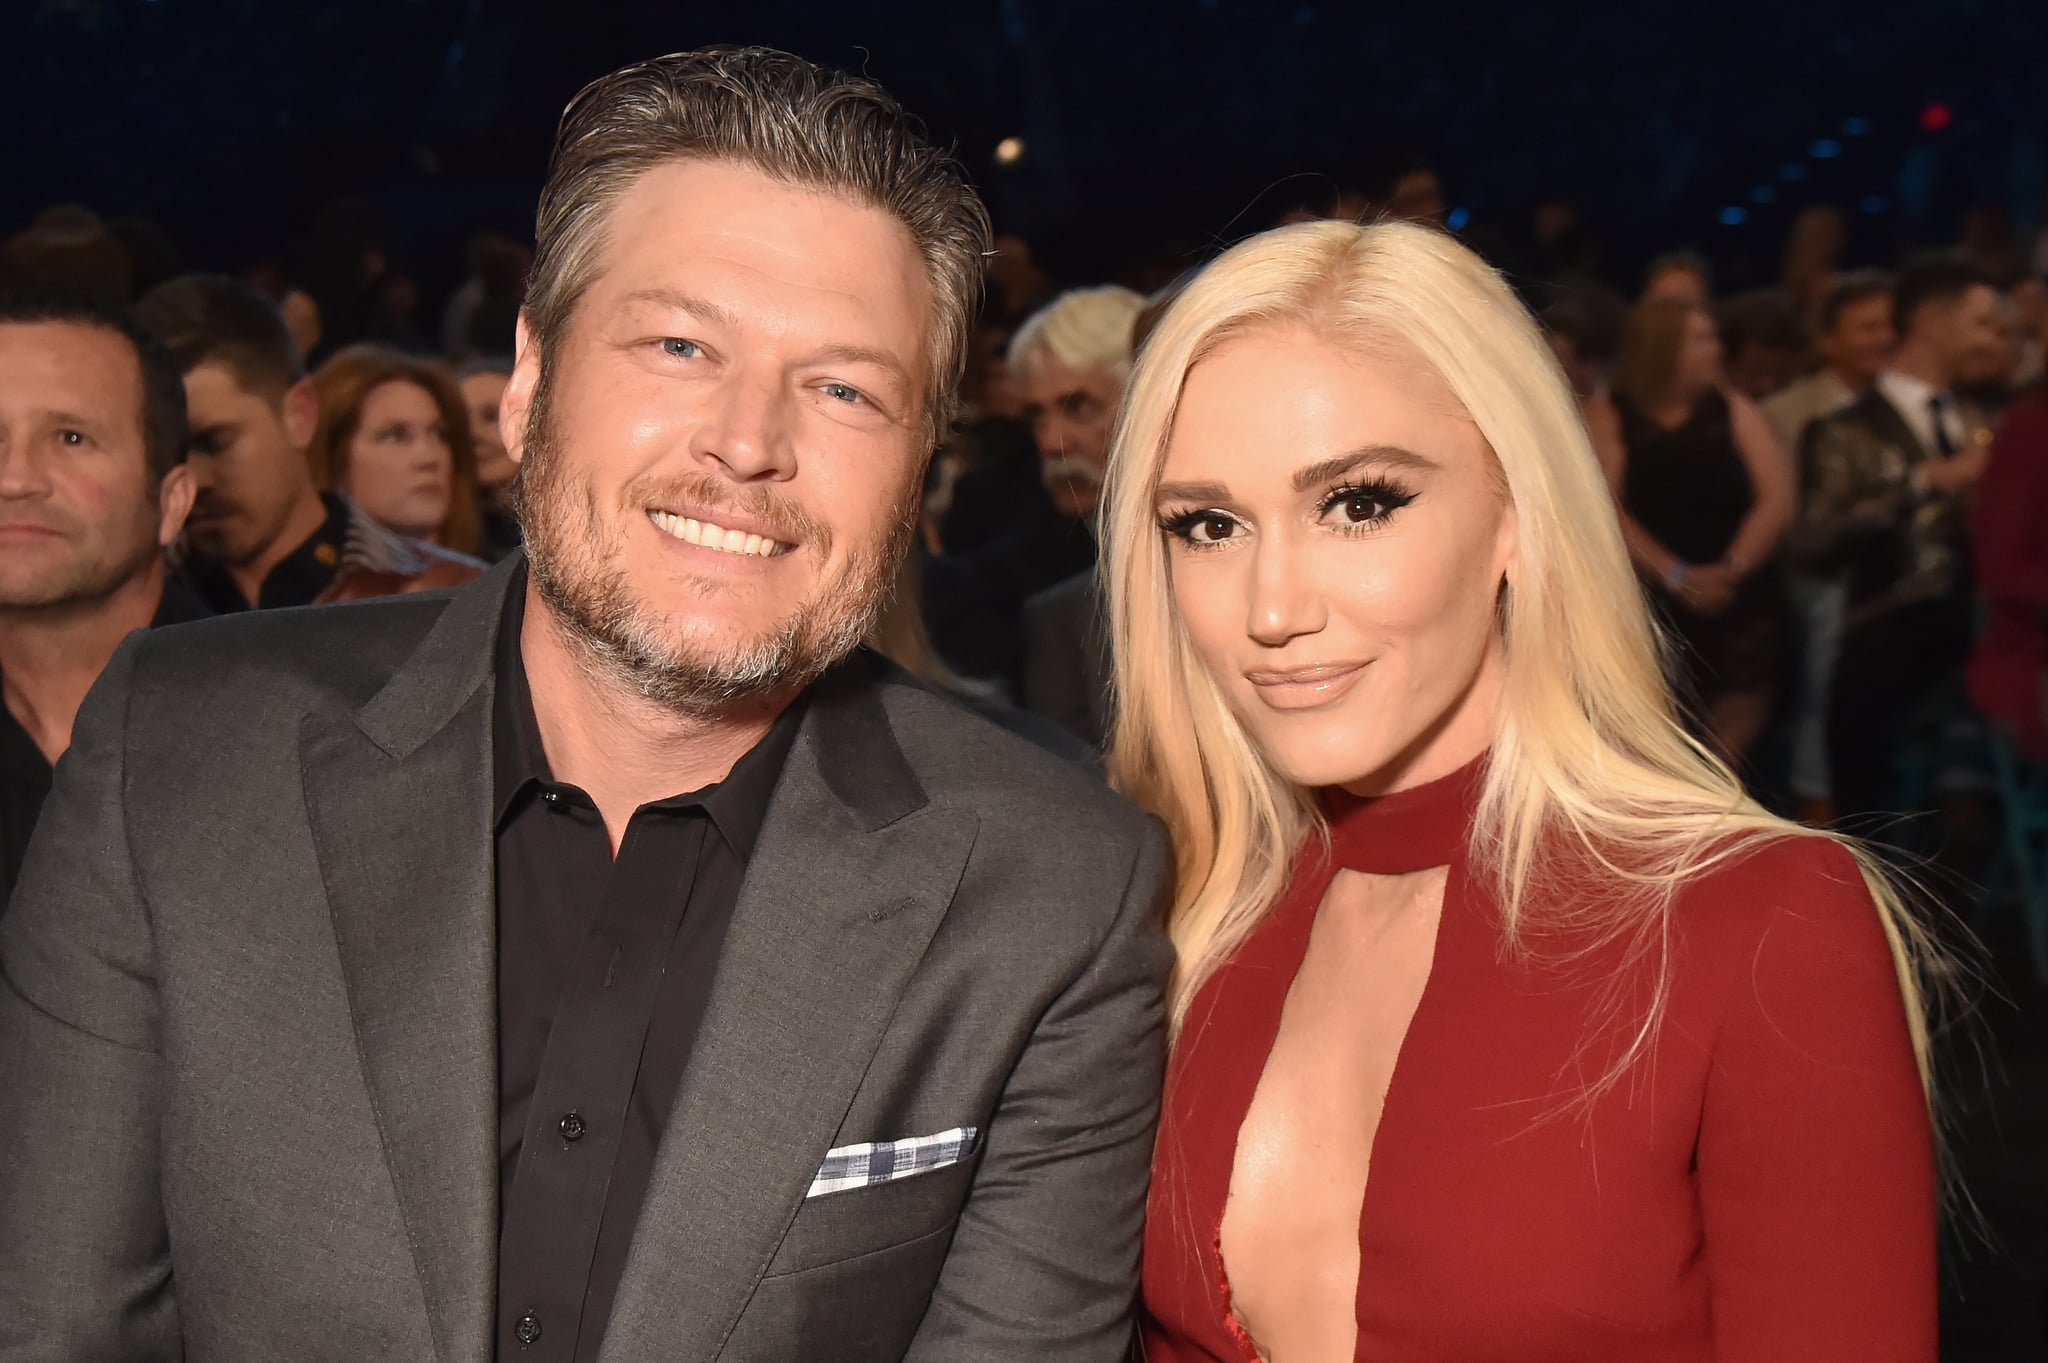 LAS VEGAS, NV - APRIL 15:  Blake Shelton (L) and Gwen Stefani attend the 53rd Academy of Country Music Awards at MGM Grand Garden Arena on April 15, 2018 in Las Vegas, Nevada.  (Photo by Jeff Kravitz/ACMA2018/FilmMagic for ACM)